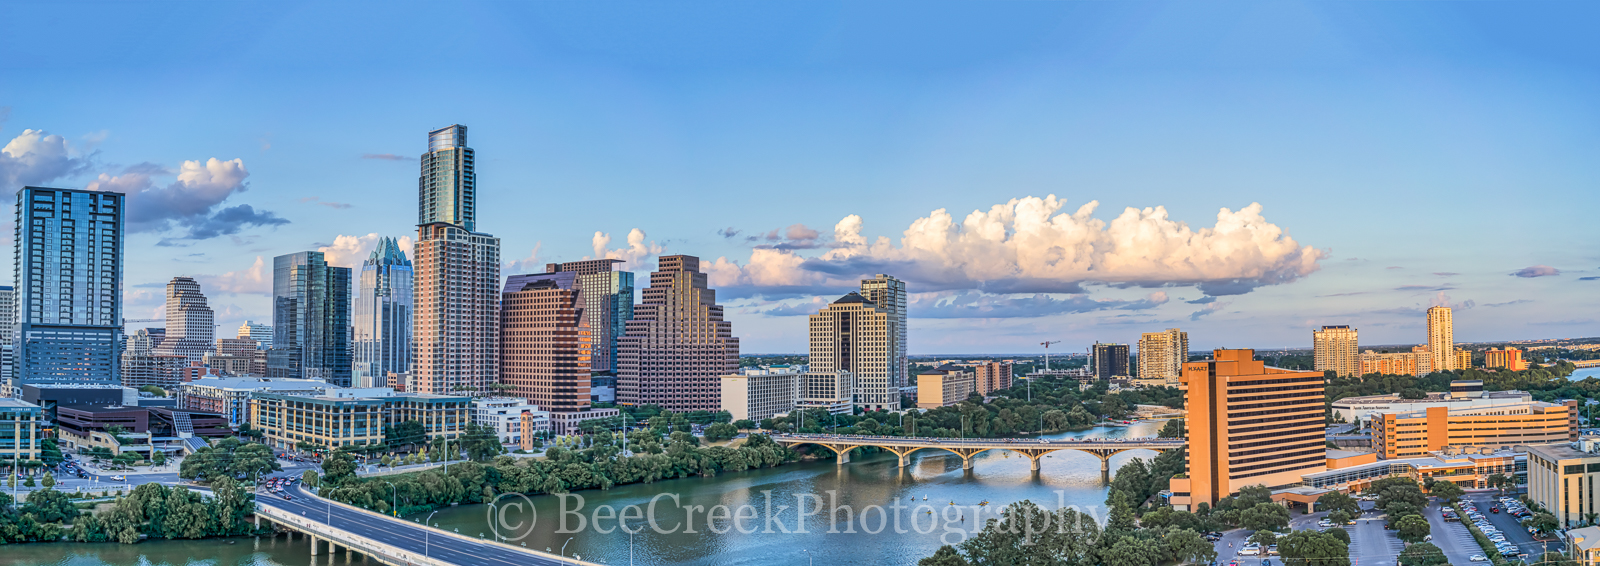 Austin, aerial, Pano, Panorama, skylines, city, downtown, cityscapes, aerial, Congress Ave.bridge, First Street, bridge, Austin City Hall, W Hotel, Colorado building, Marriott, Hyatt, Lady Bird Lake,